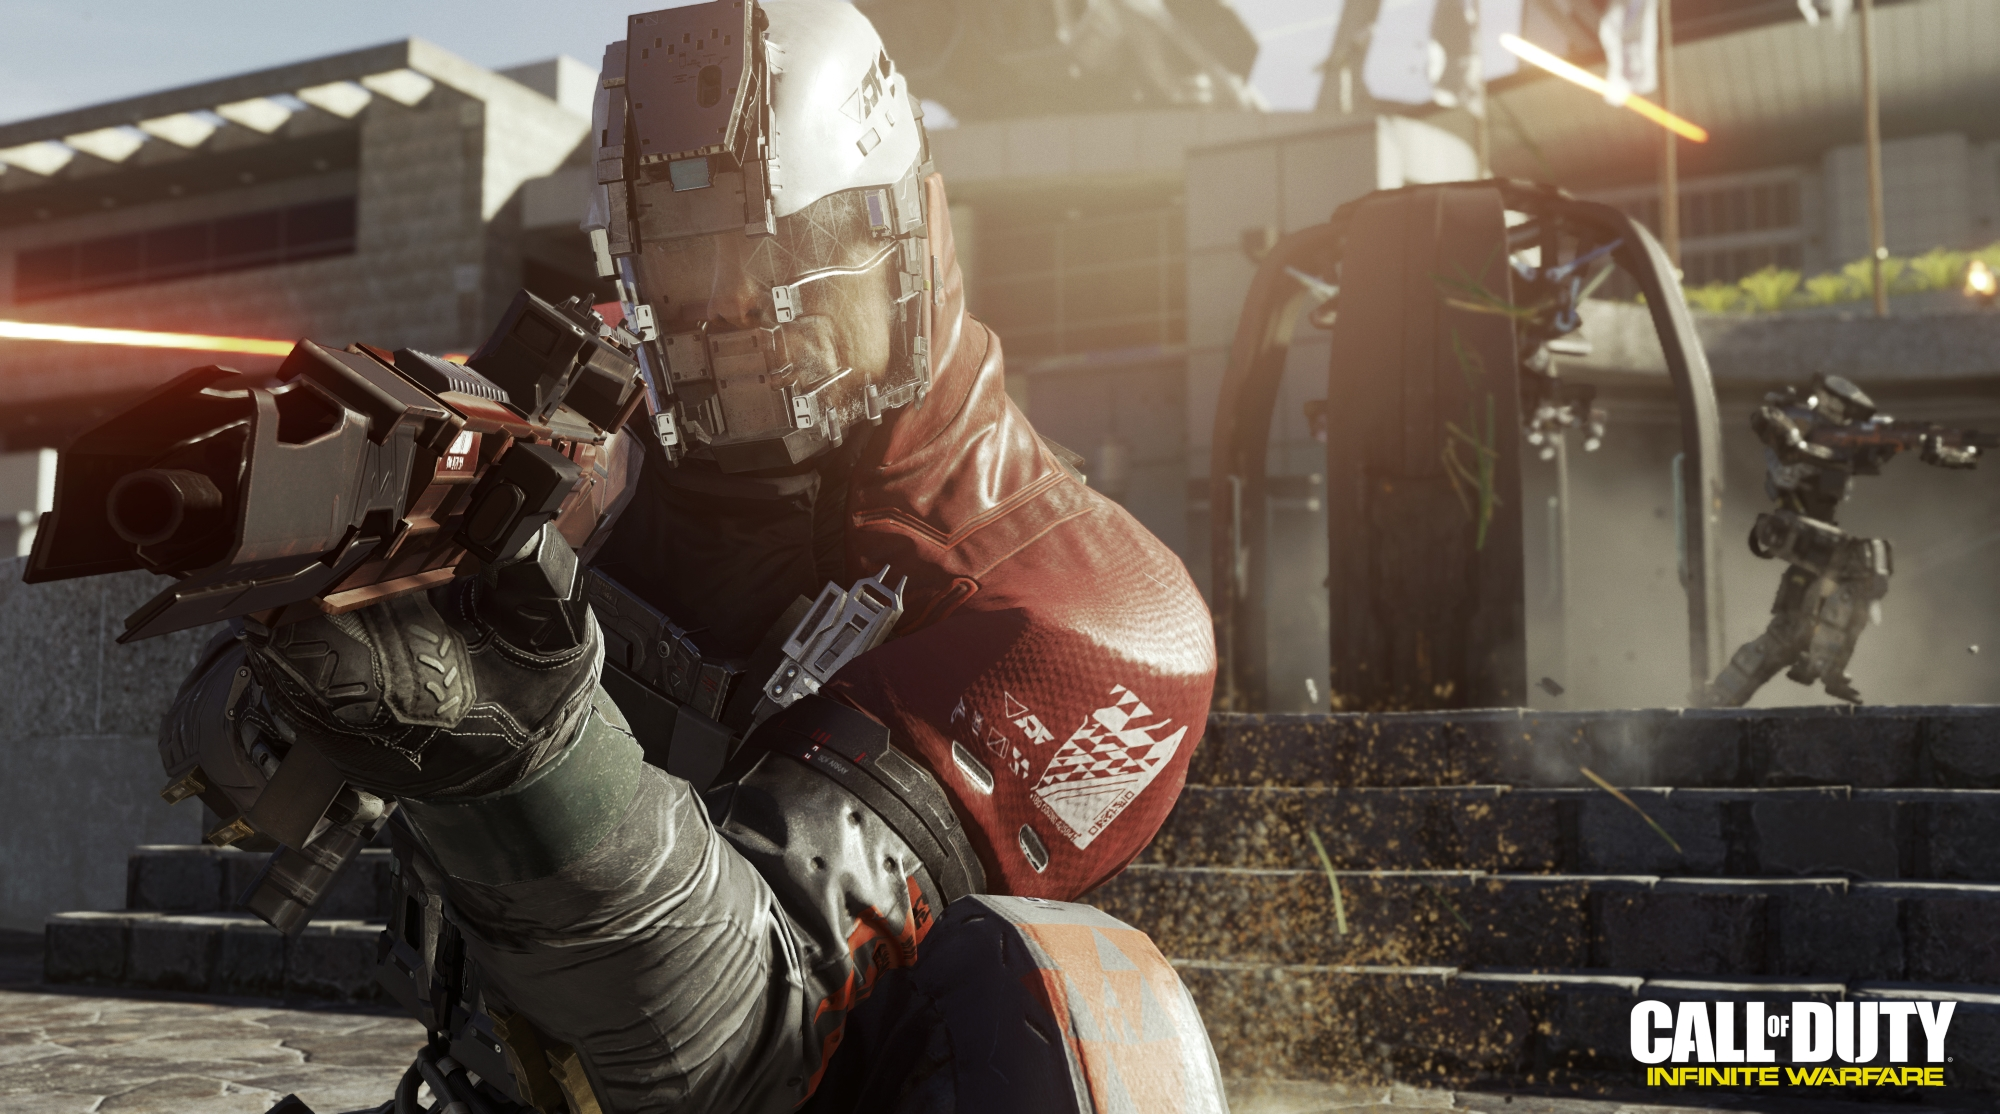 Call Of Duty: Infinite Warfare - you've nothing to lose